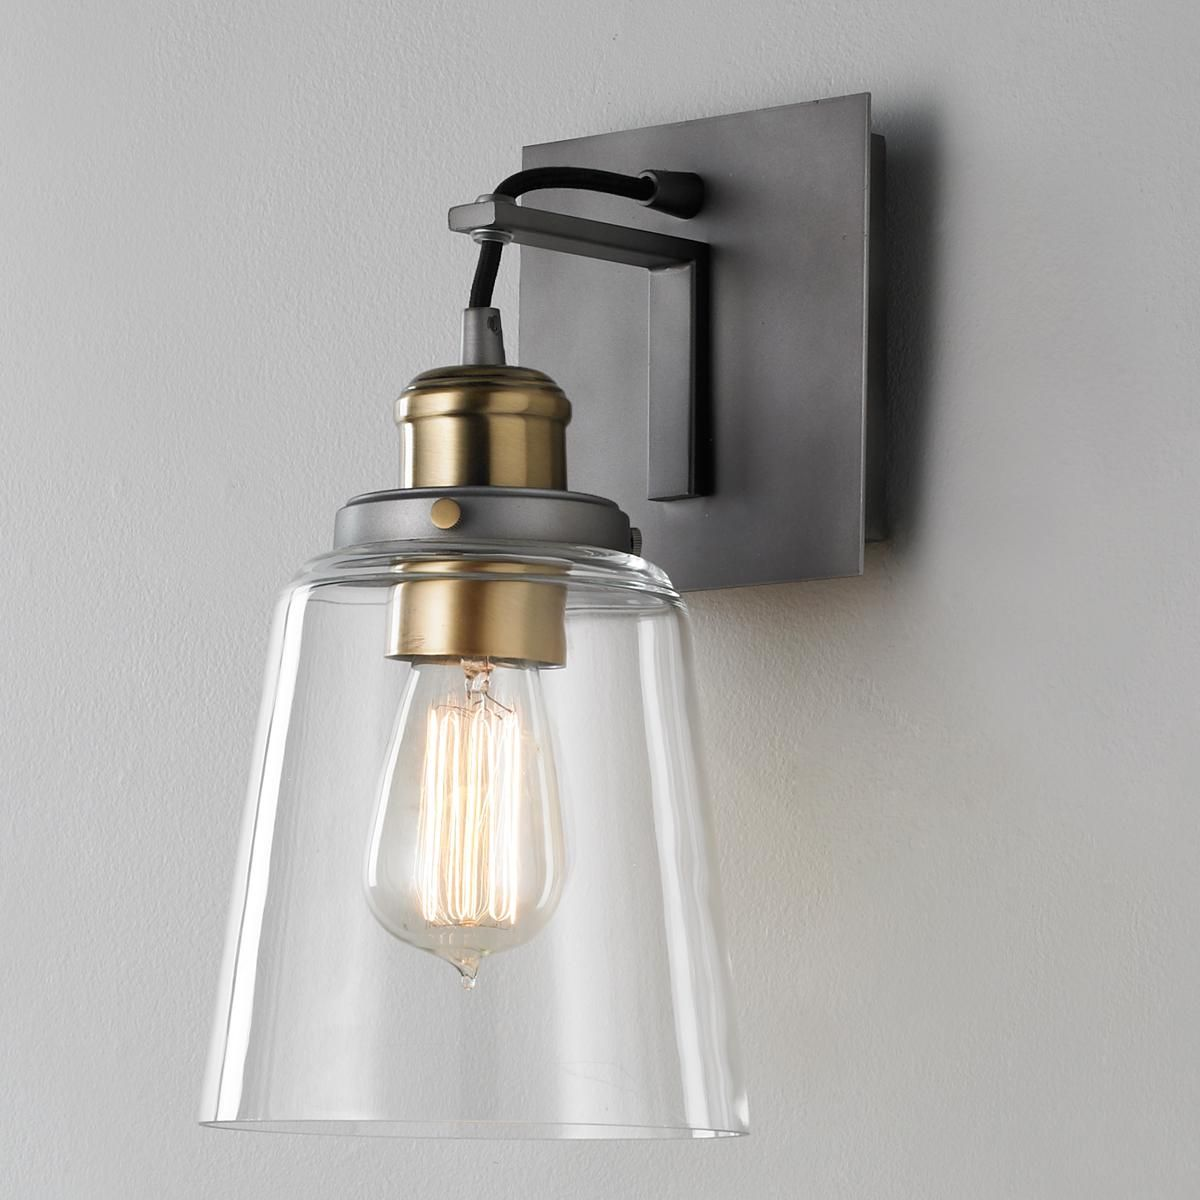 Images Of Wall Sconces Vice Wall Sconce Polished Nickel Wall Sconces And